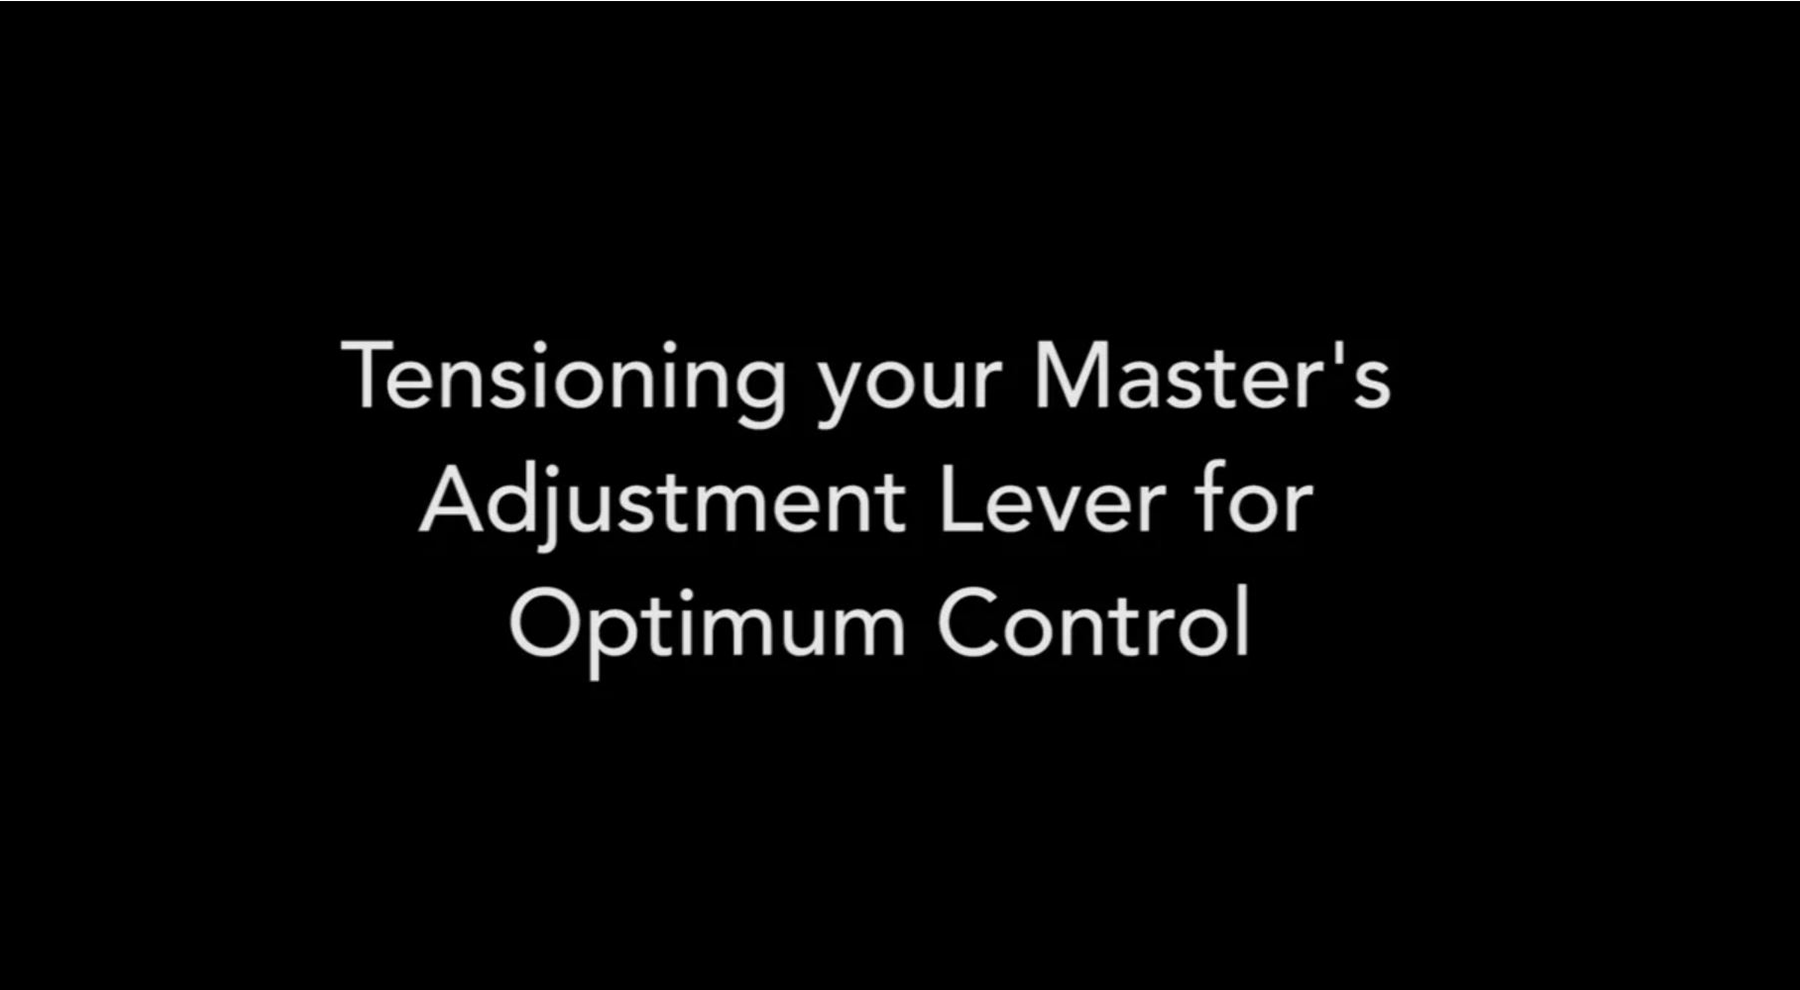 Tensioning your Master®'s Adjustment Lever